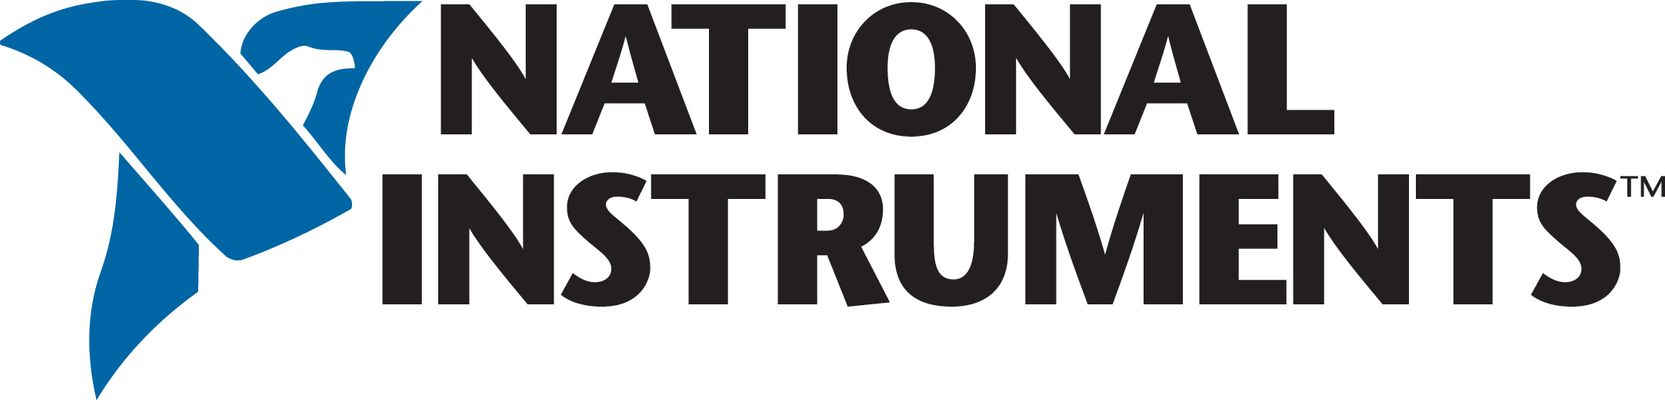 NationalInstruments_logo.jpg